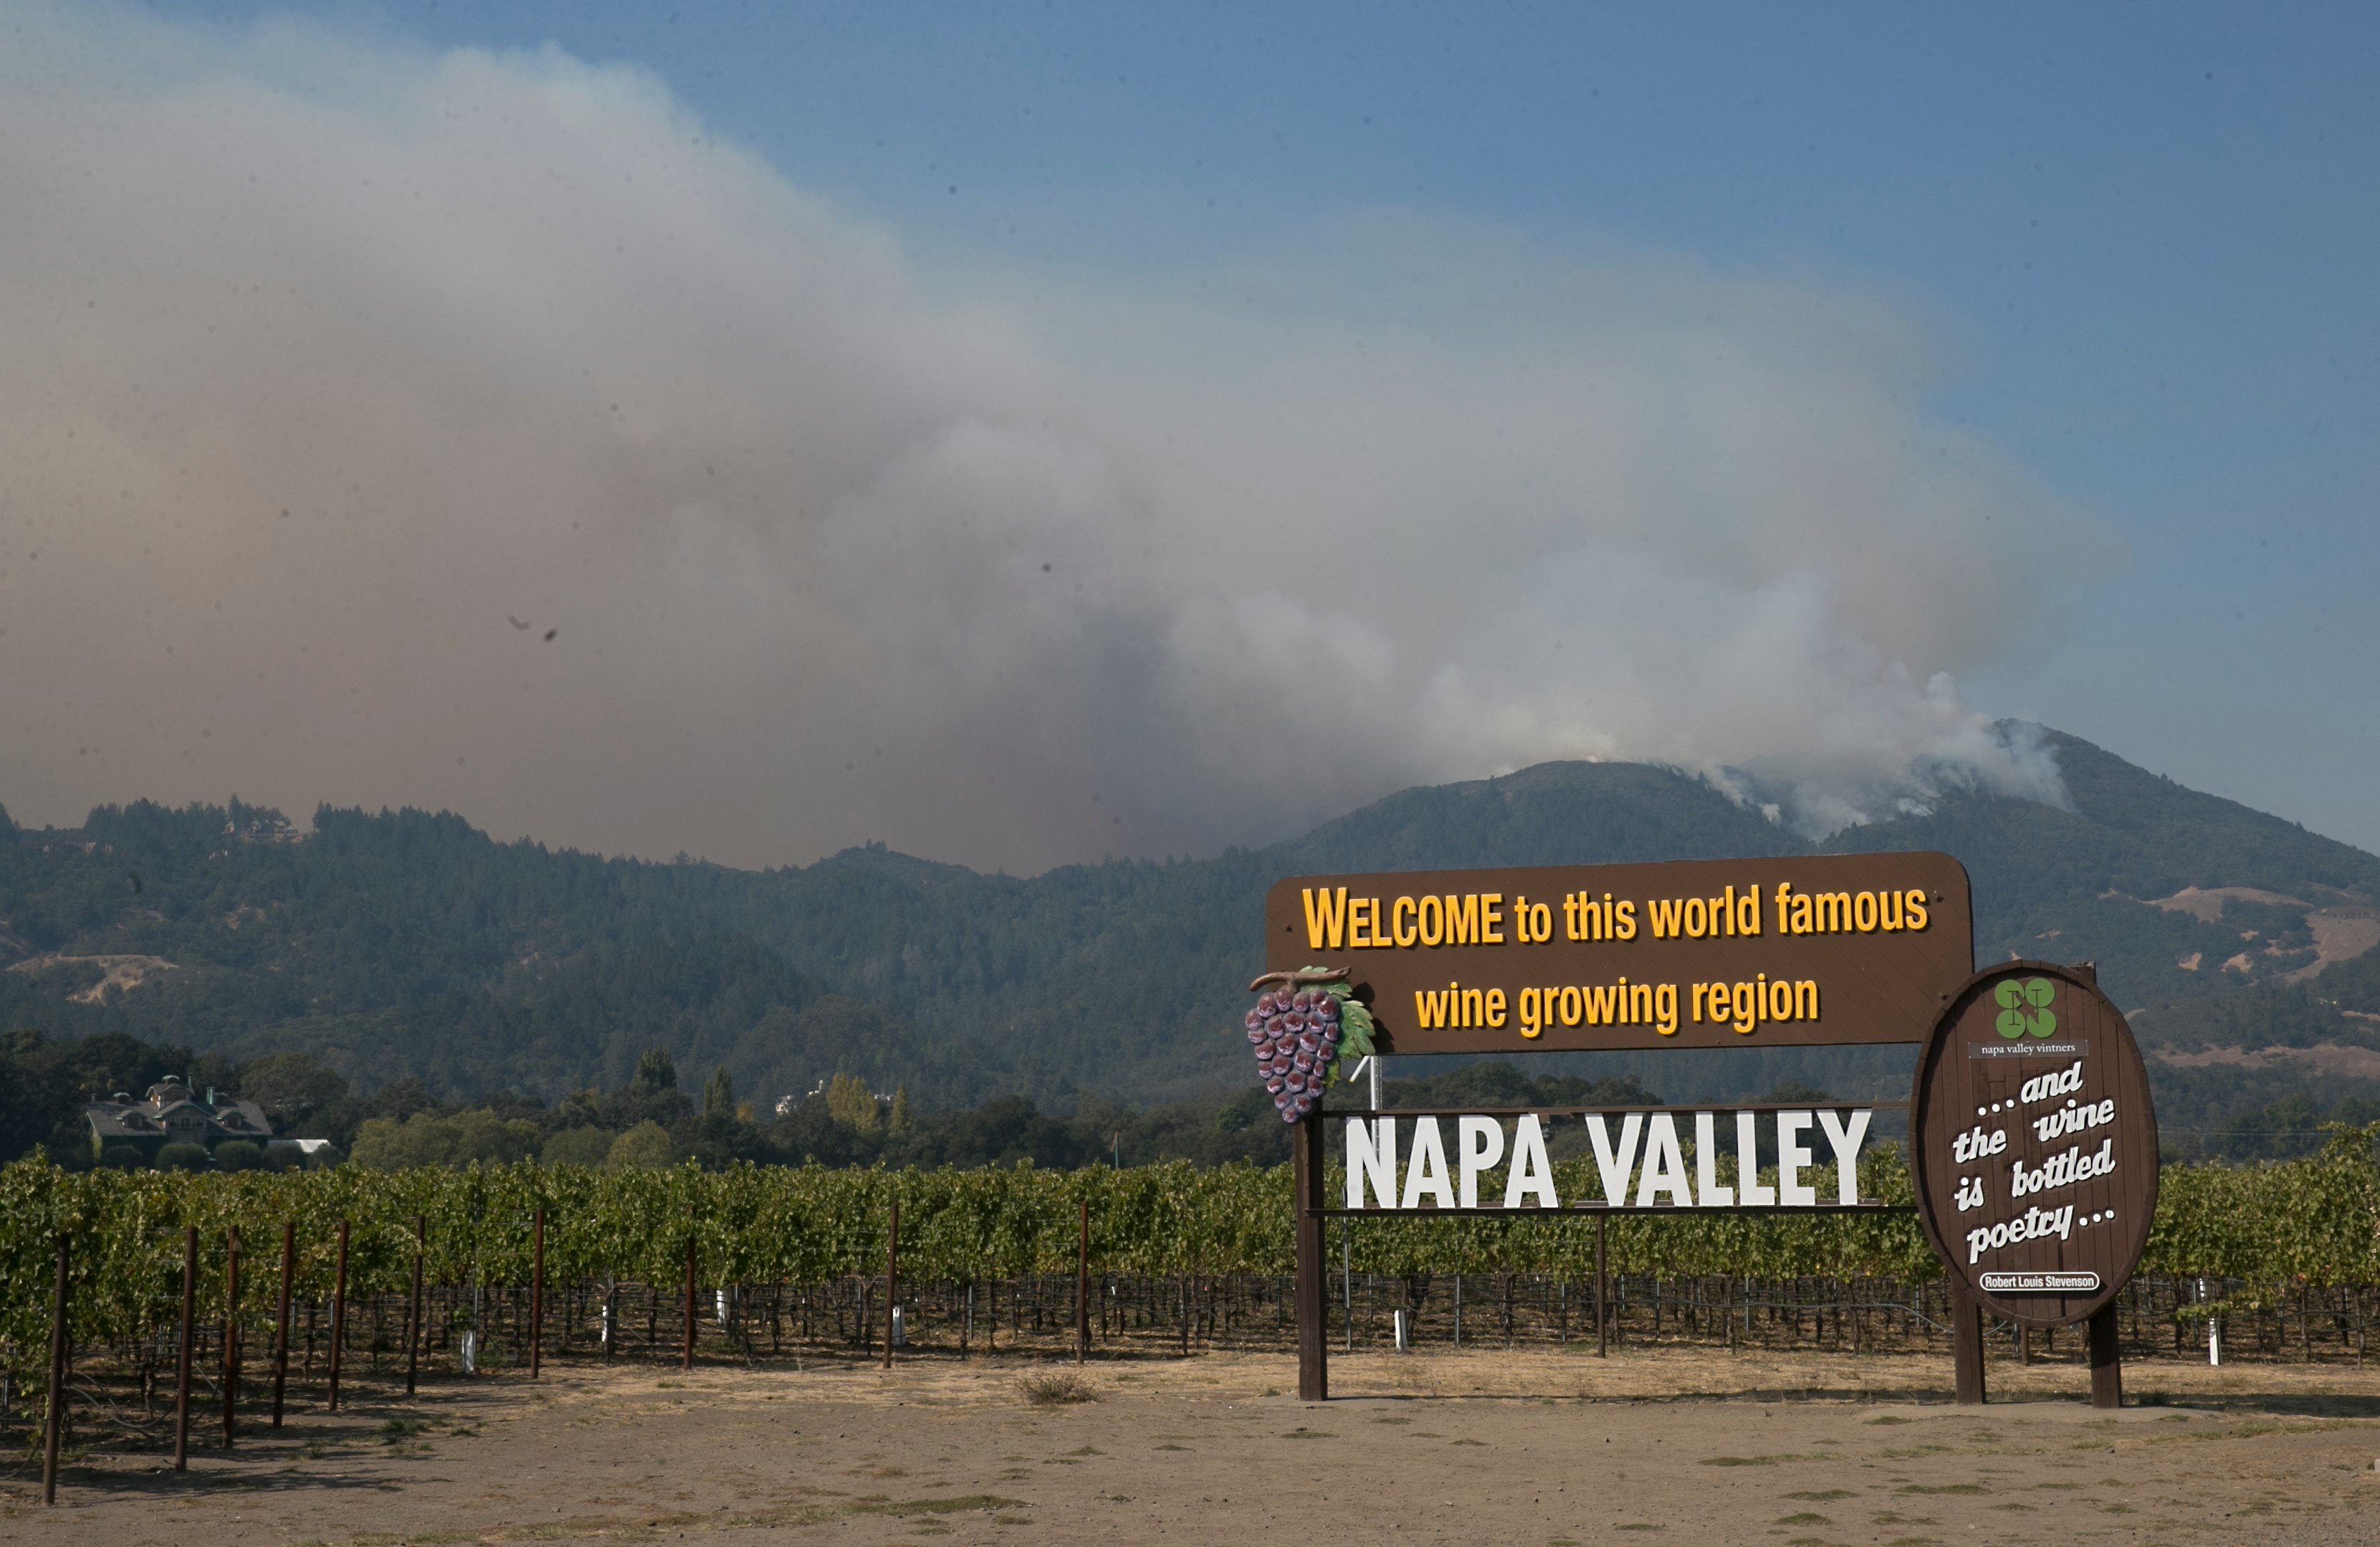 Firefighters gained some ground on a blaze burning in the heart of California's wine country but face another tough day ahead with low humidity and high winds expected to return. (AP Photo/Rich Pedroncelli)